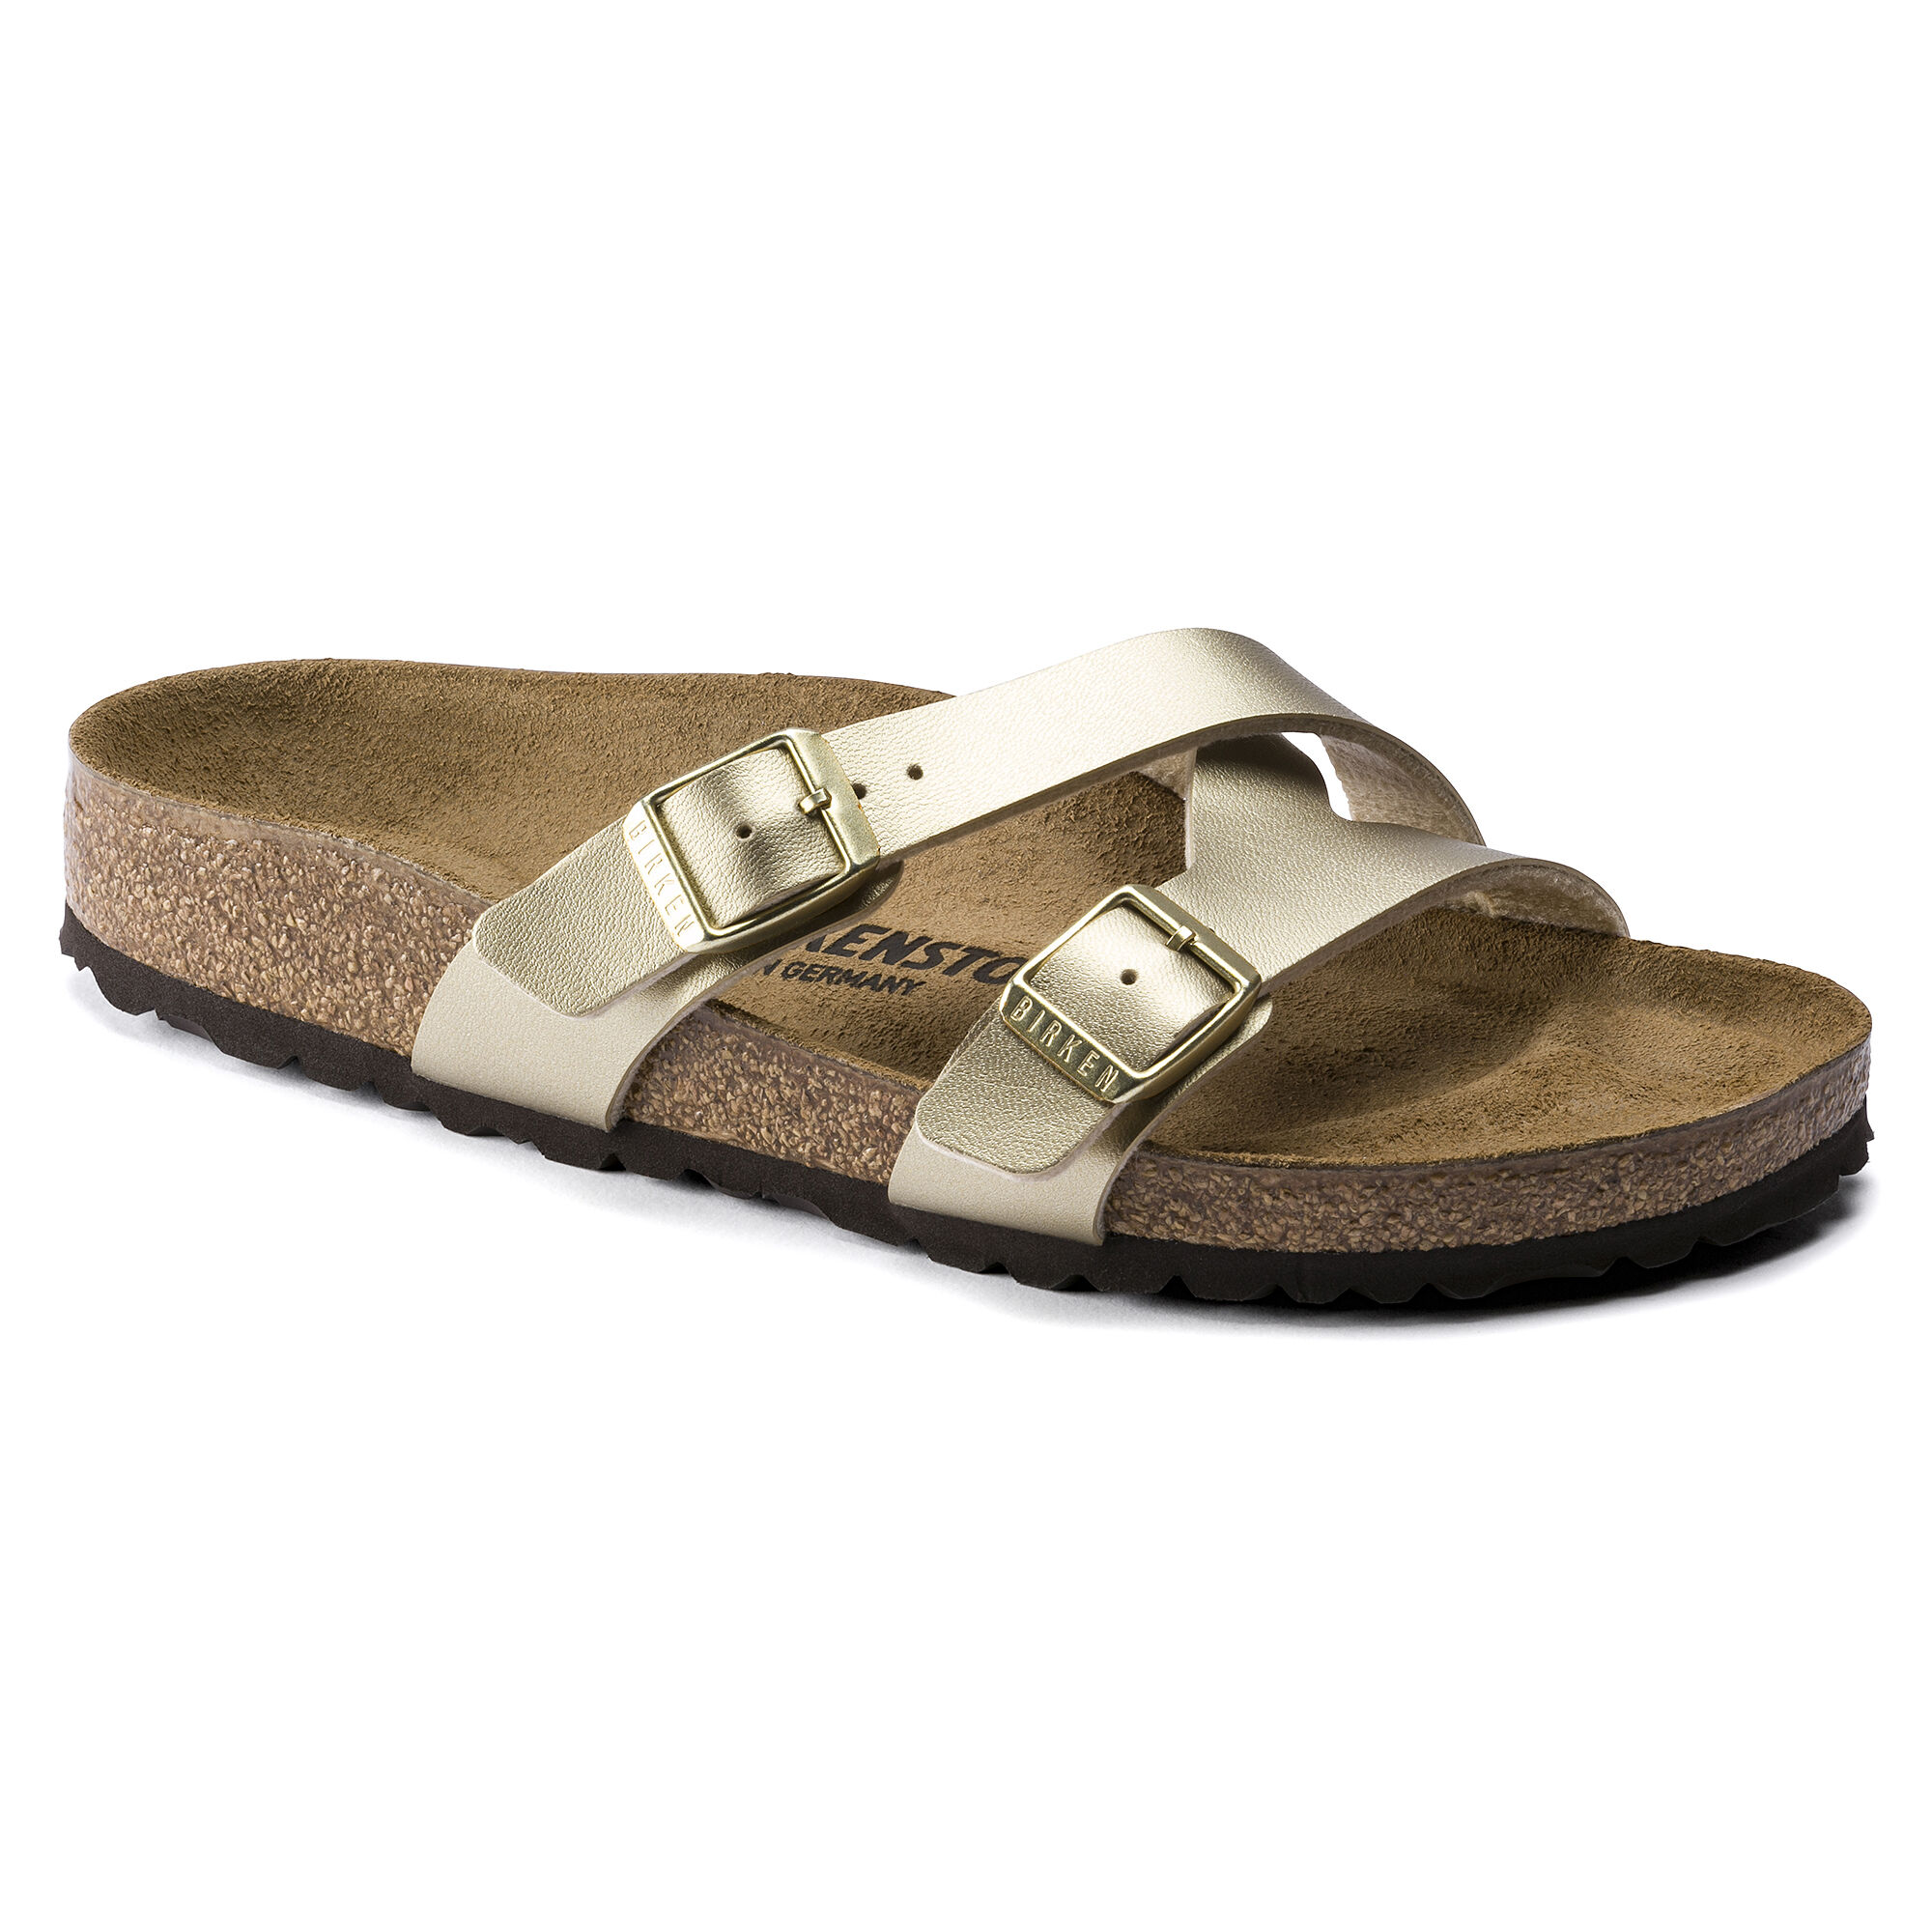 Sandals for Women | buy online at BIRKENSTOCK